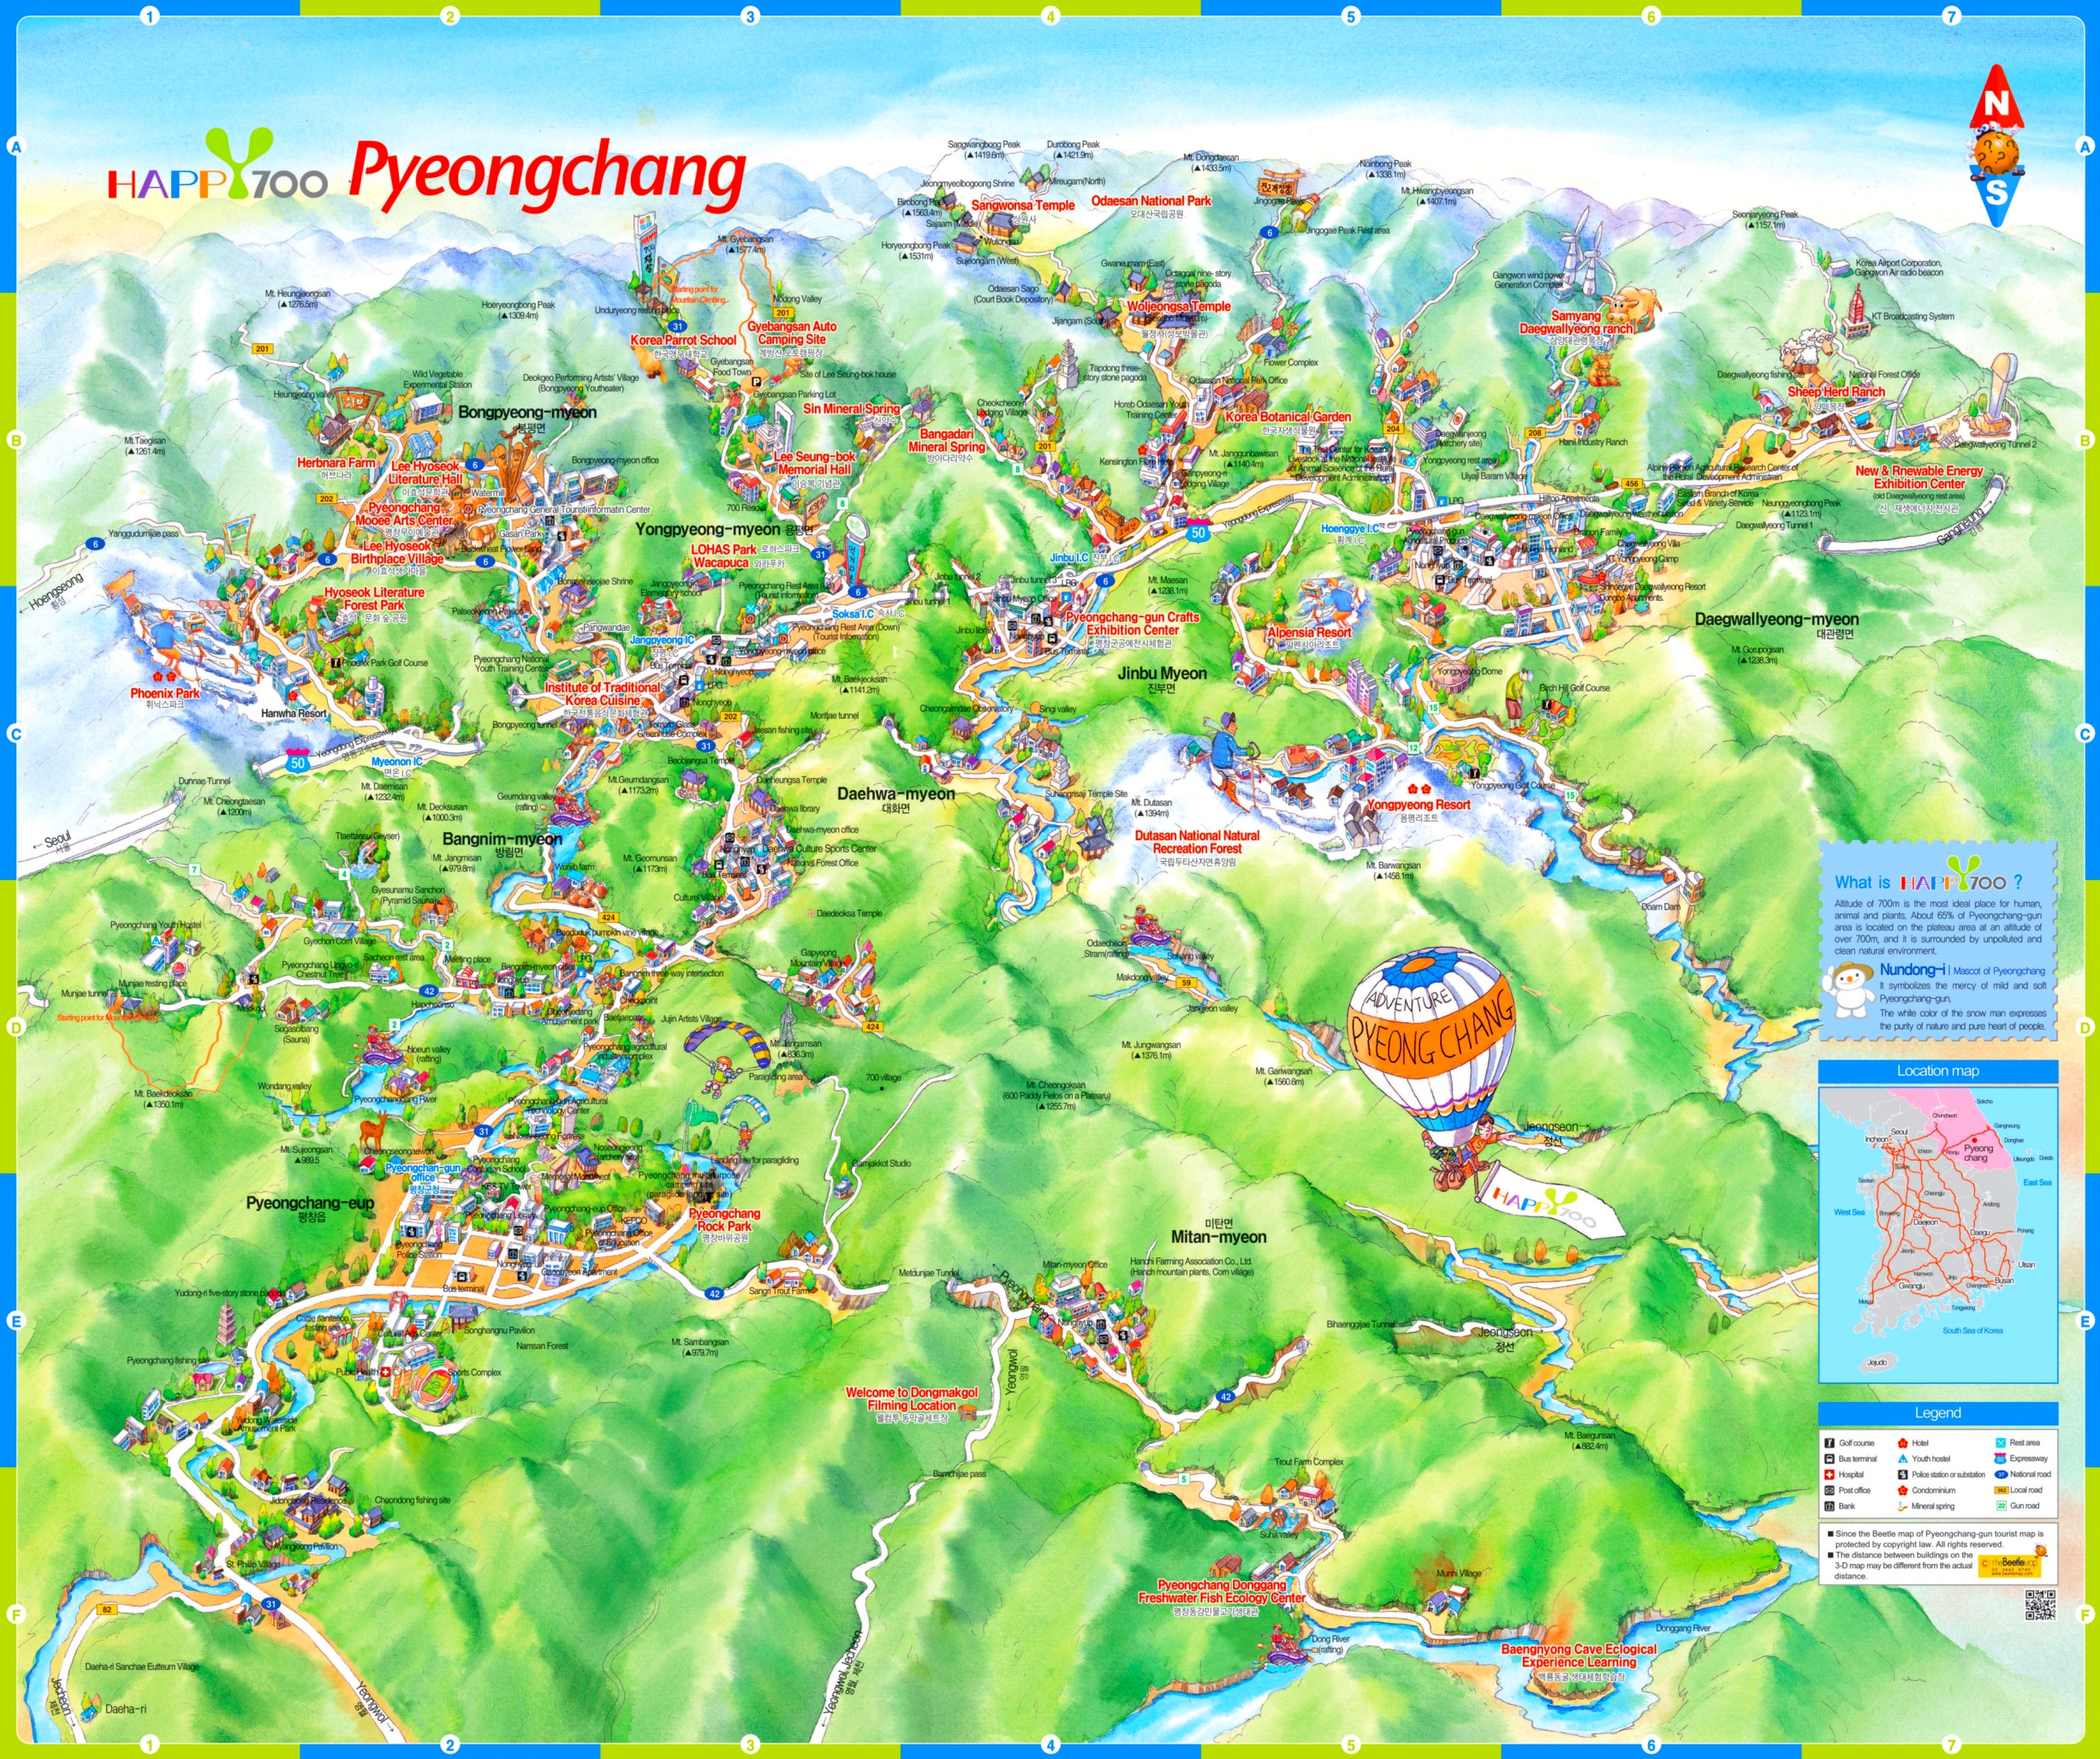 Pyeongchang tourist attractions map